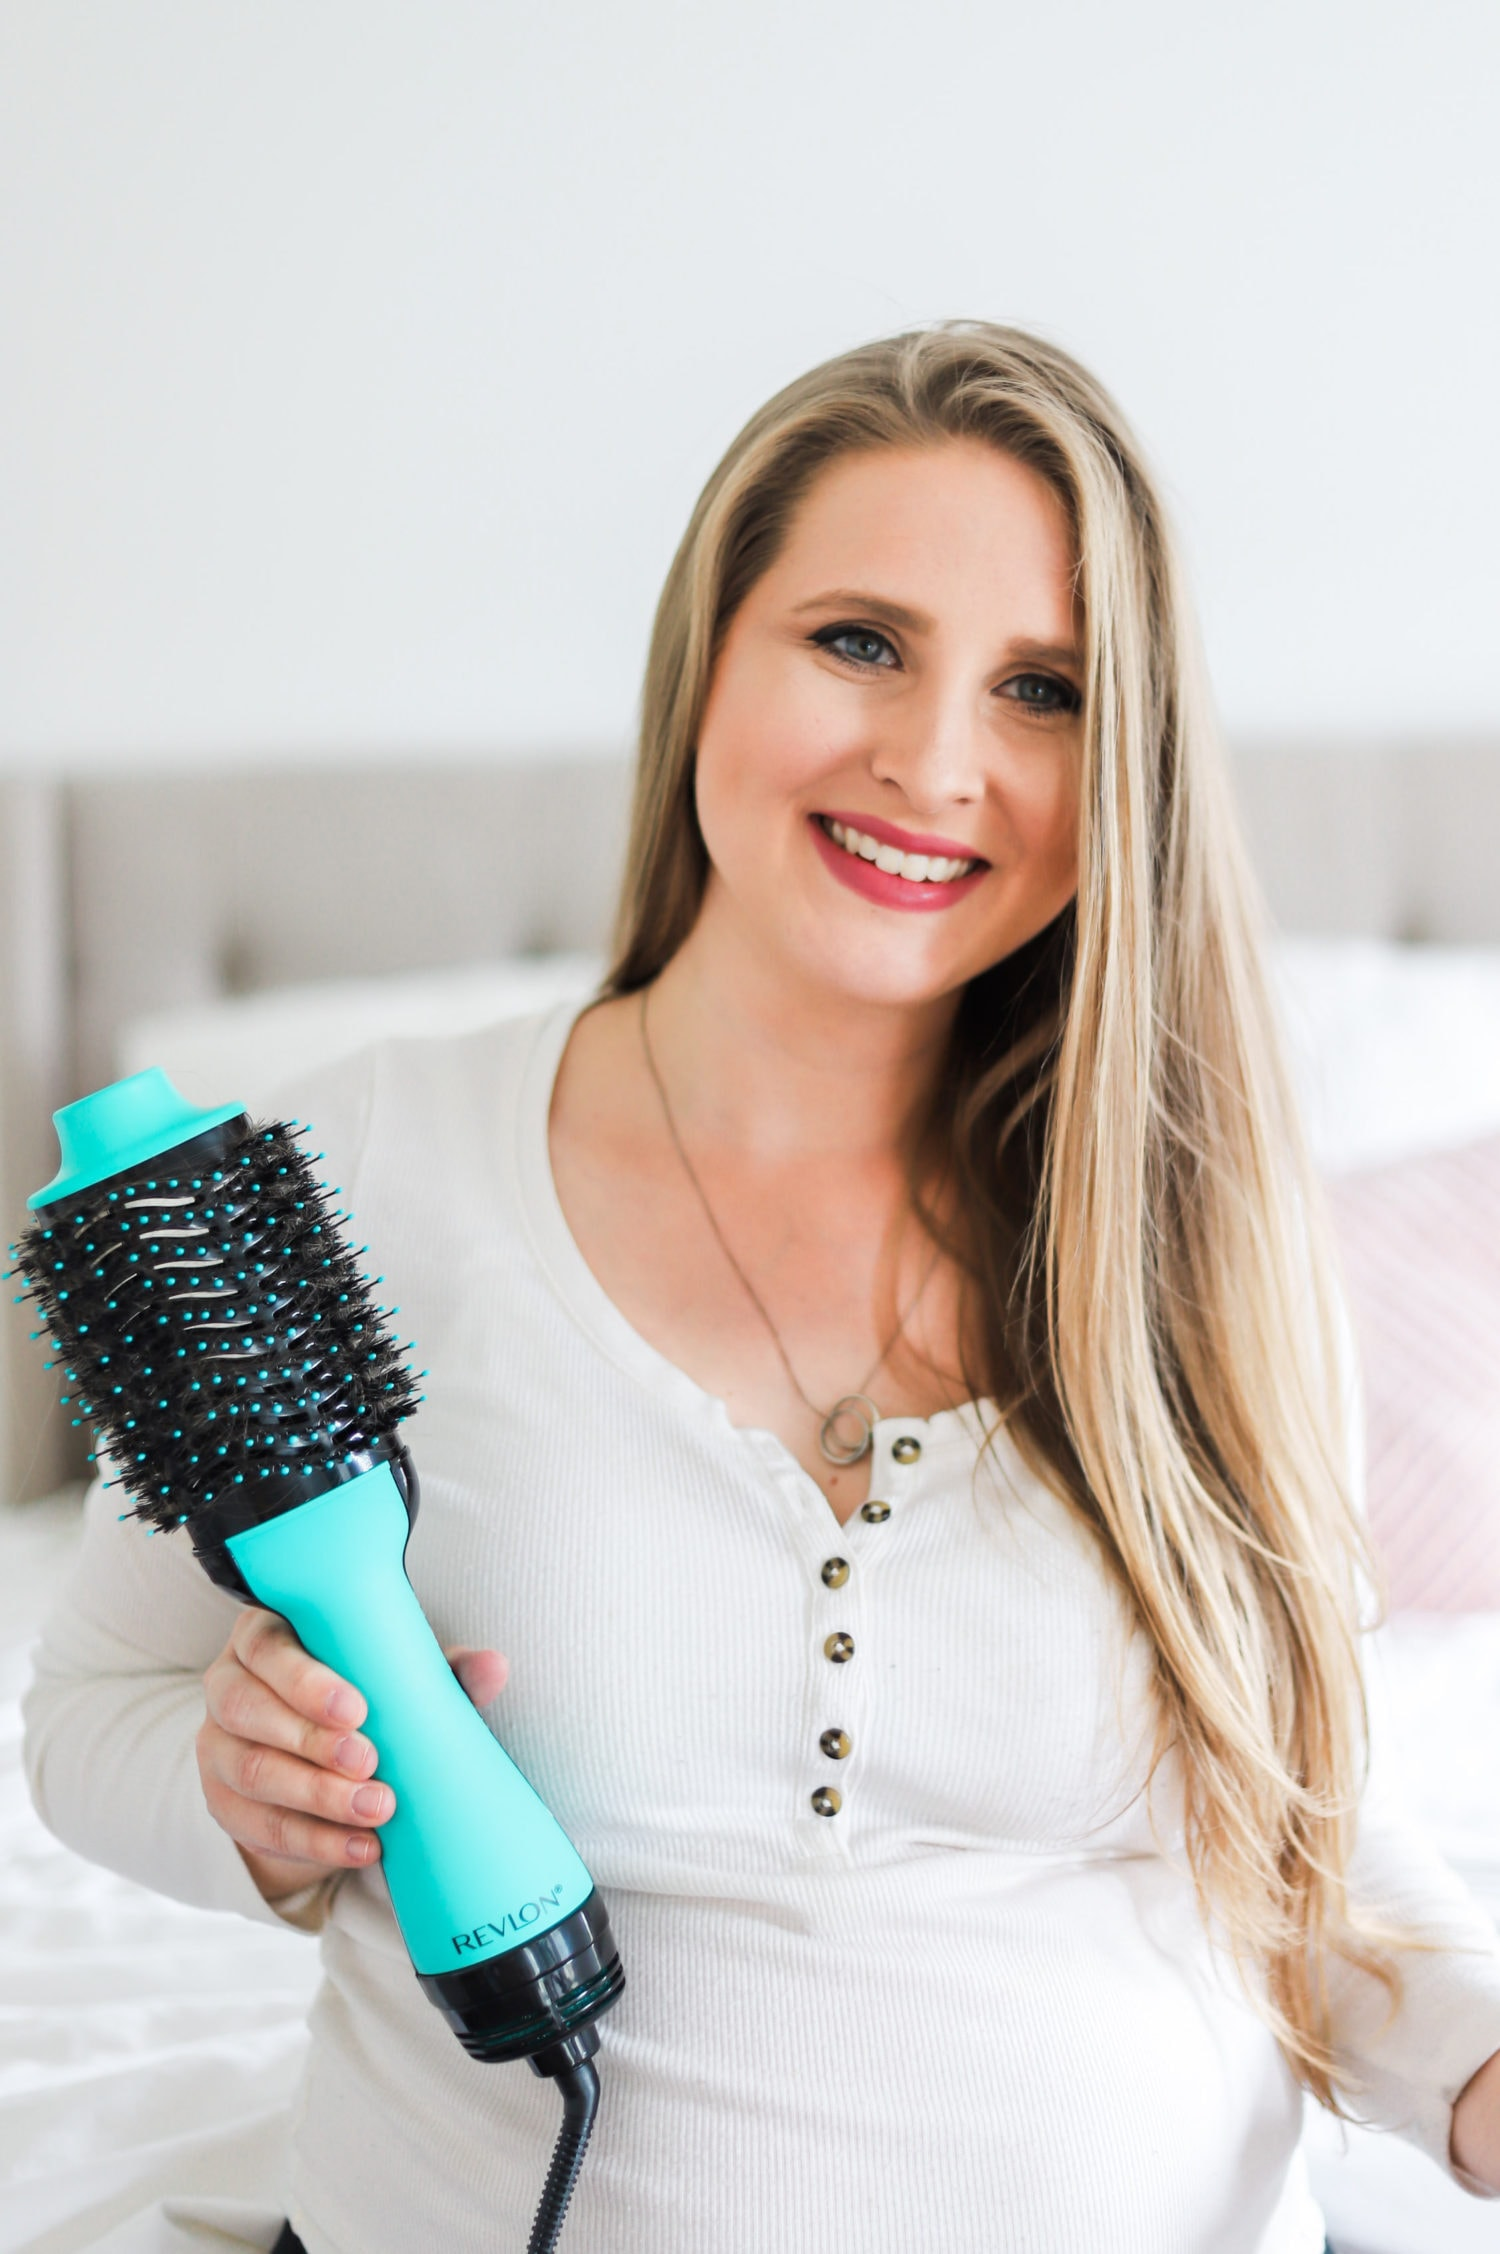 How to get a salon-quality blowout at home with the Revlon One-Step Volumizer and Hair Dryer in Orlando, Florida beauty blogger's easy step-by-step video tutorial.